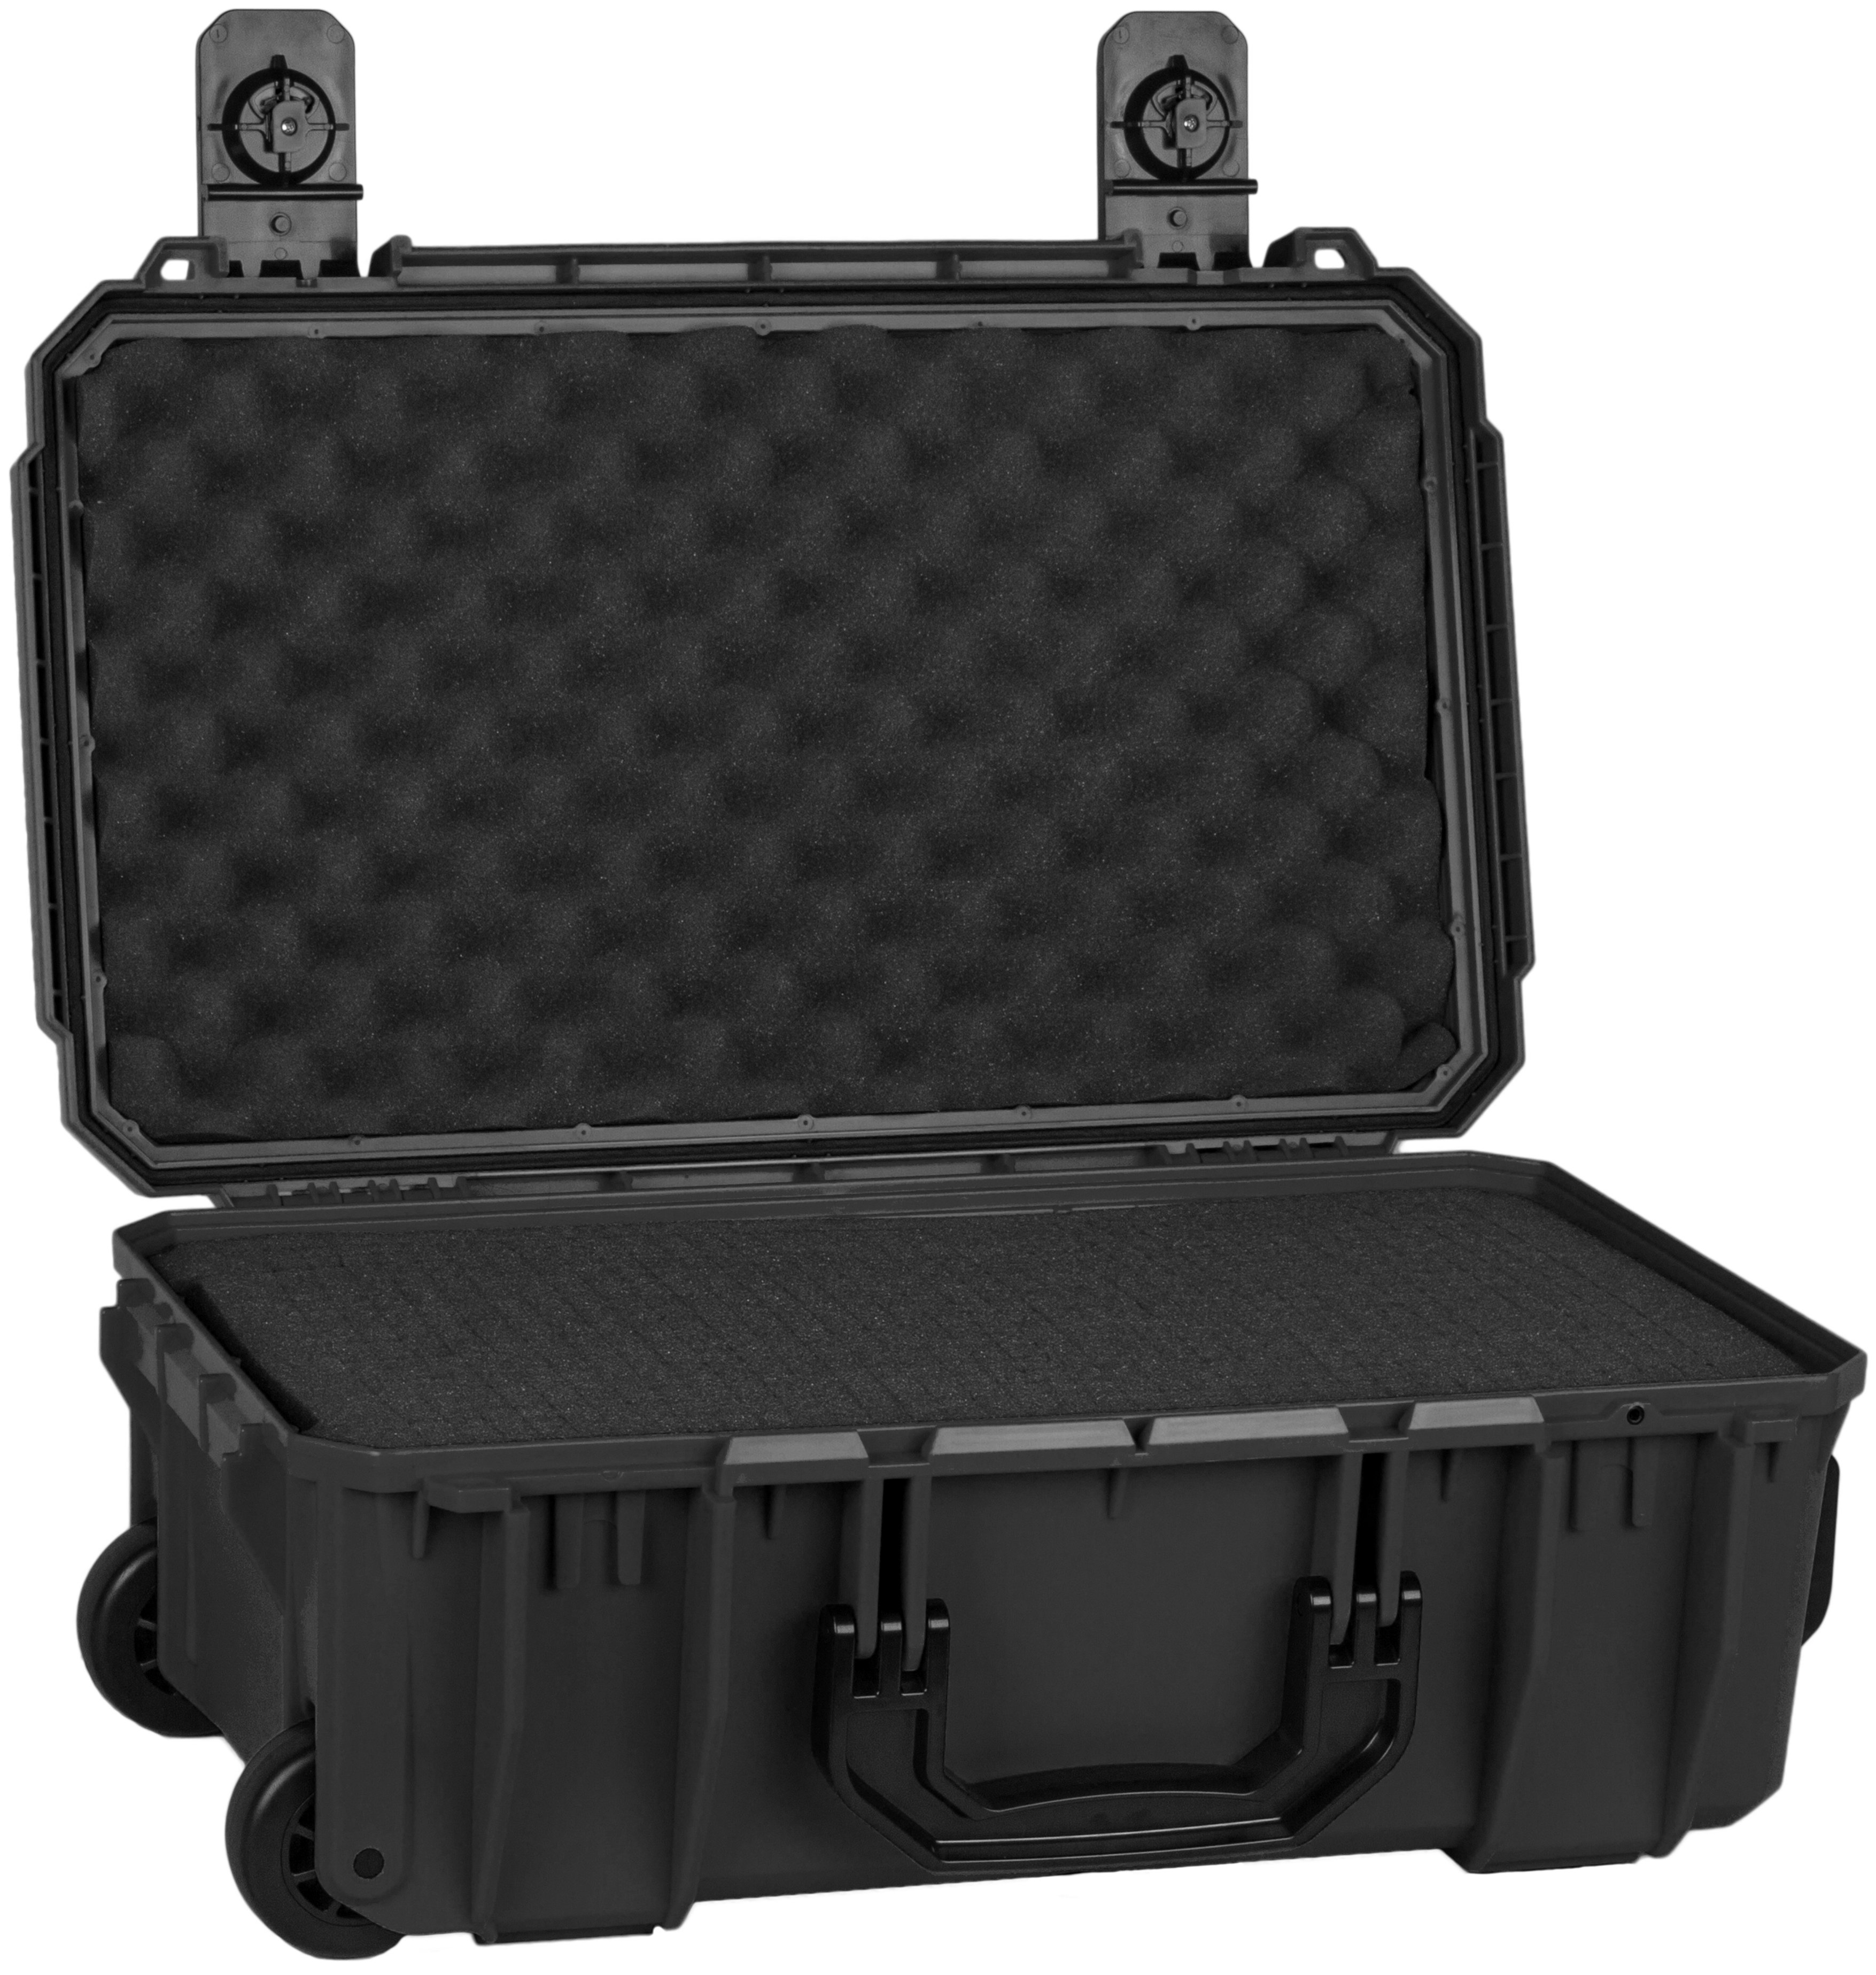 62f0c5dabe35 Case Club CC830SE Case - Carry-On Approved